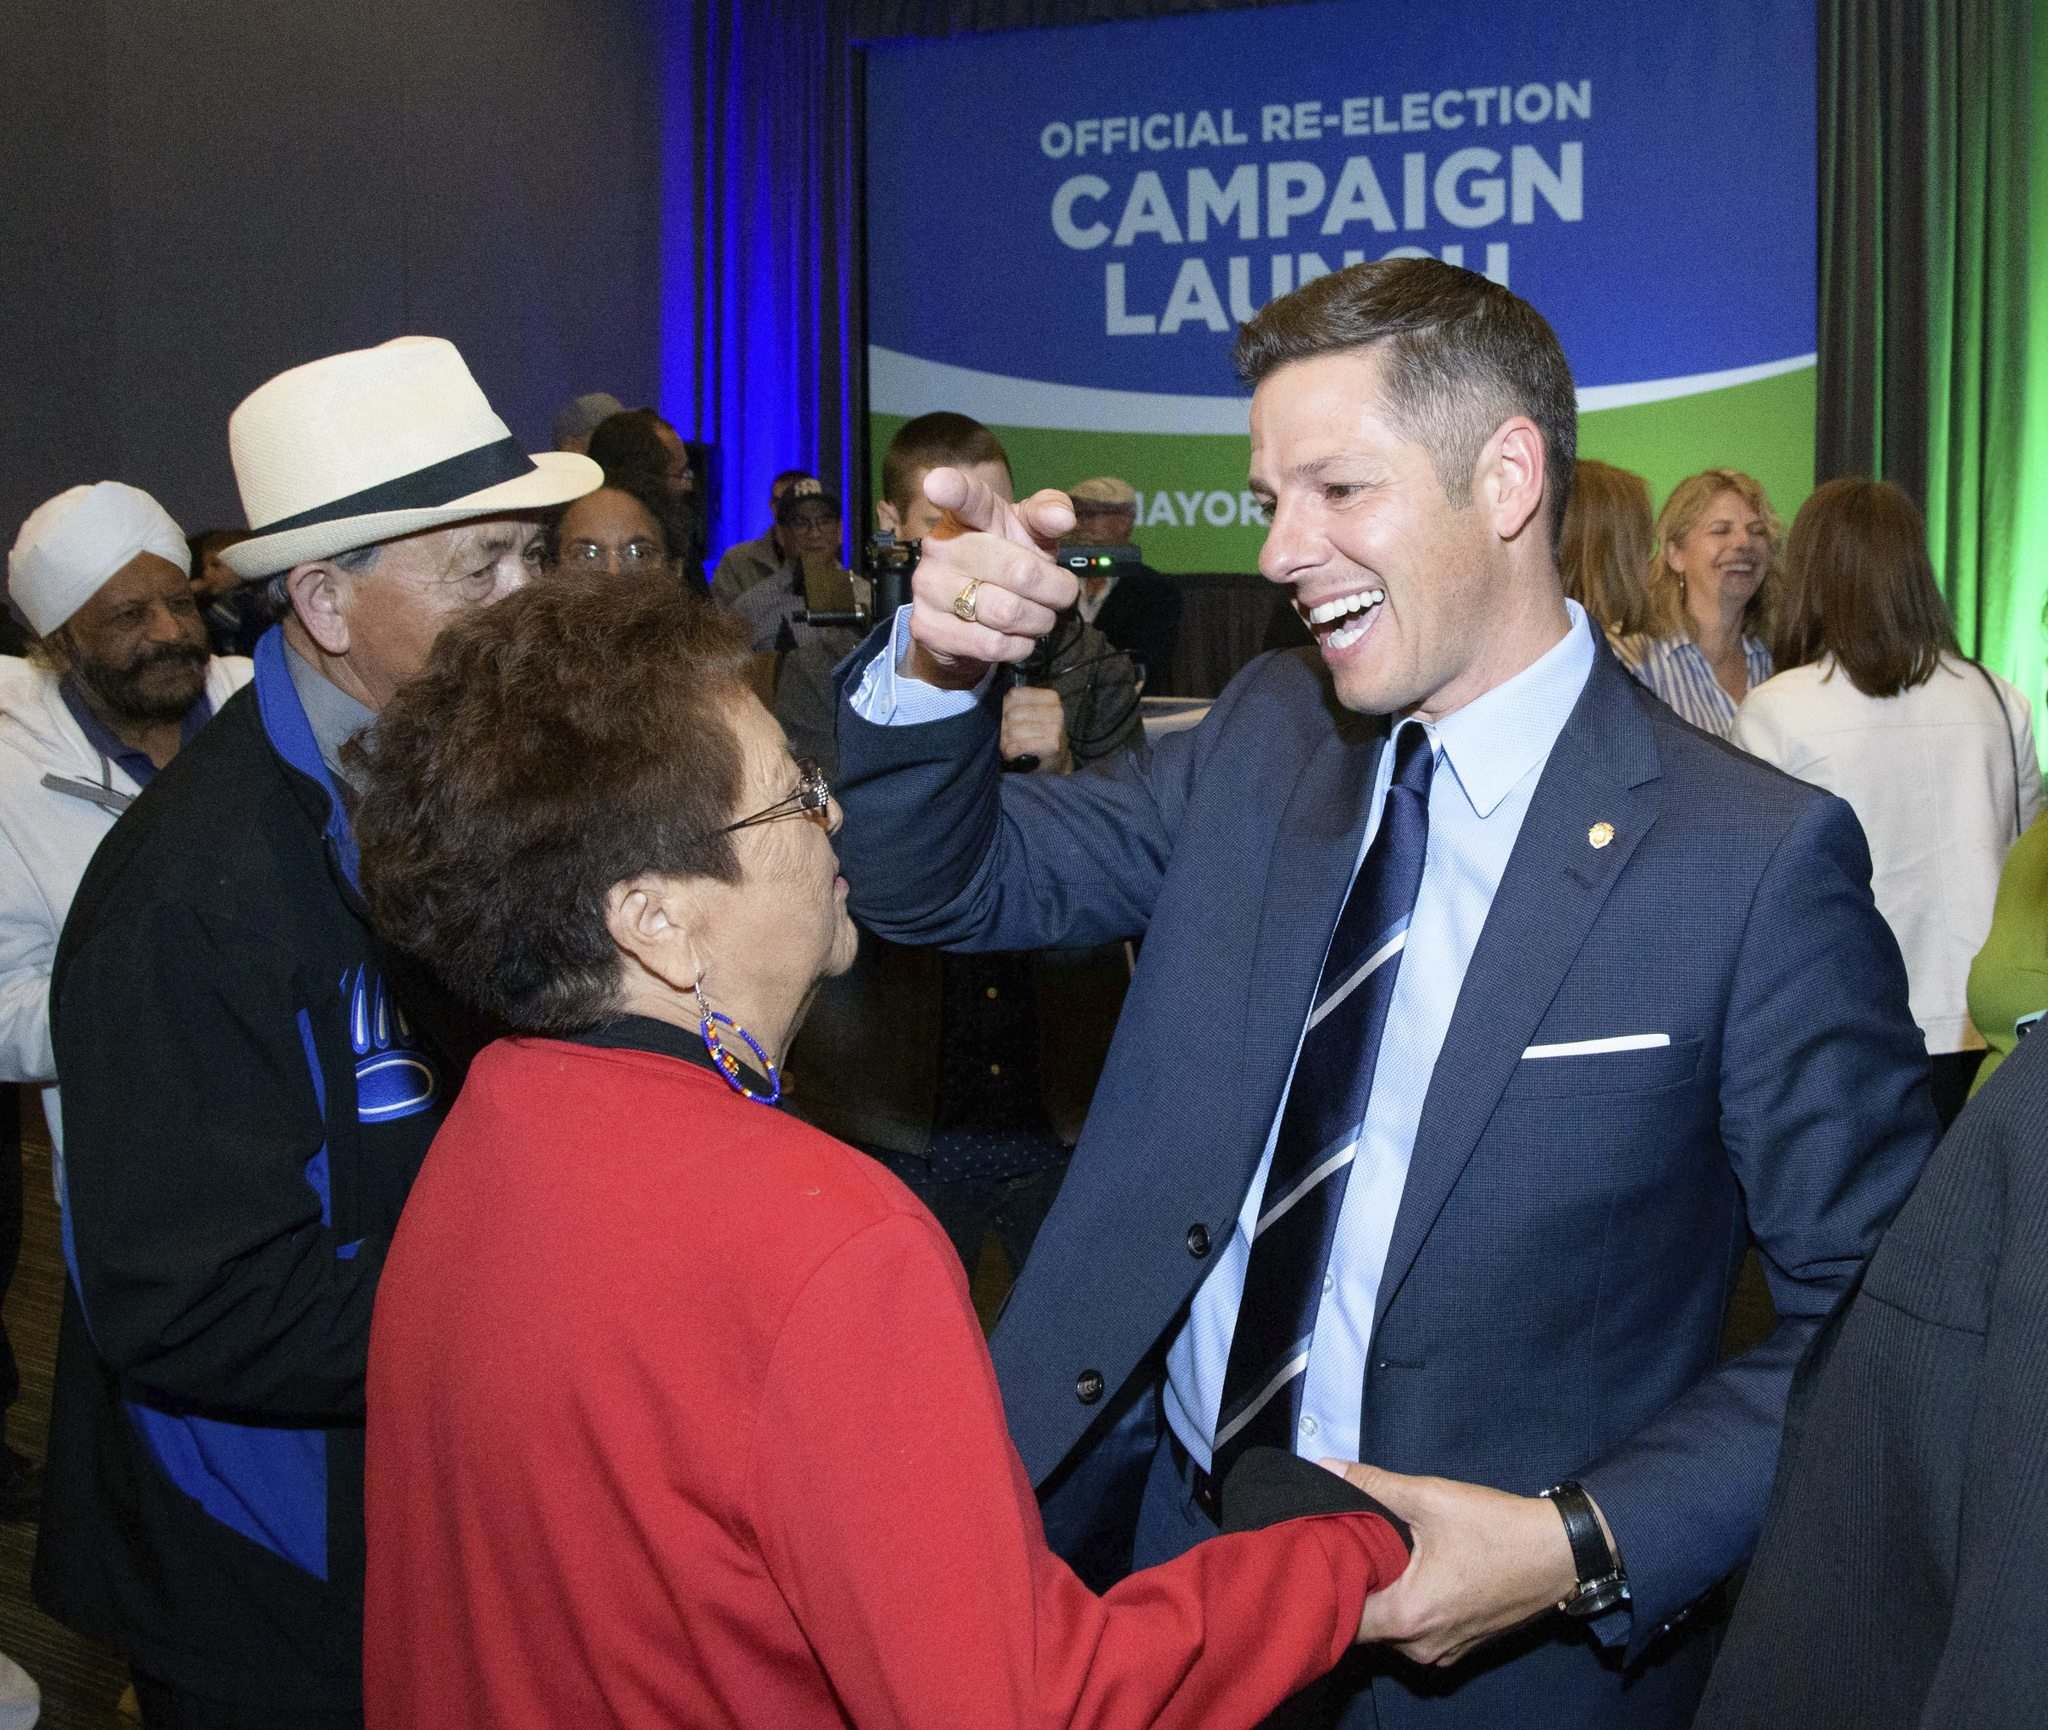 <p>Brian Bowman speaking with supporters after announcing his re-election campaign at the RBC Convention Centre Thursday evening.</p>